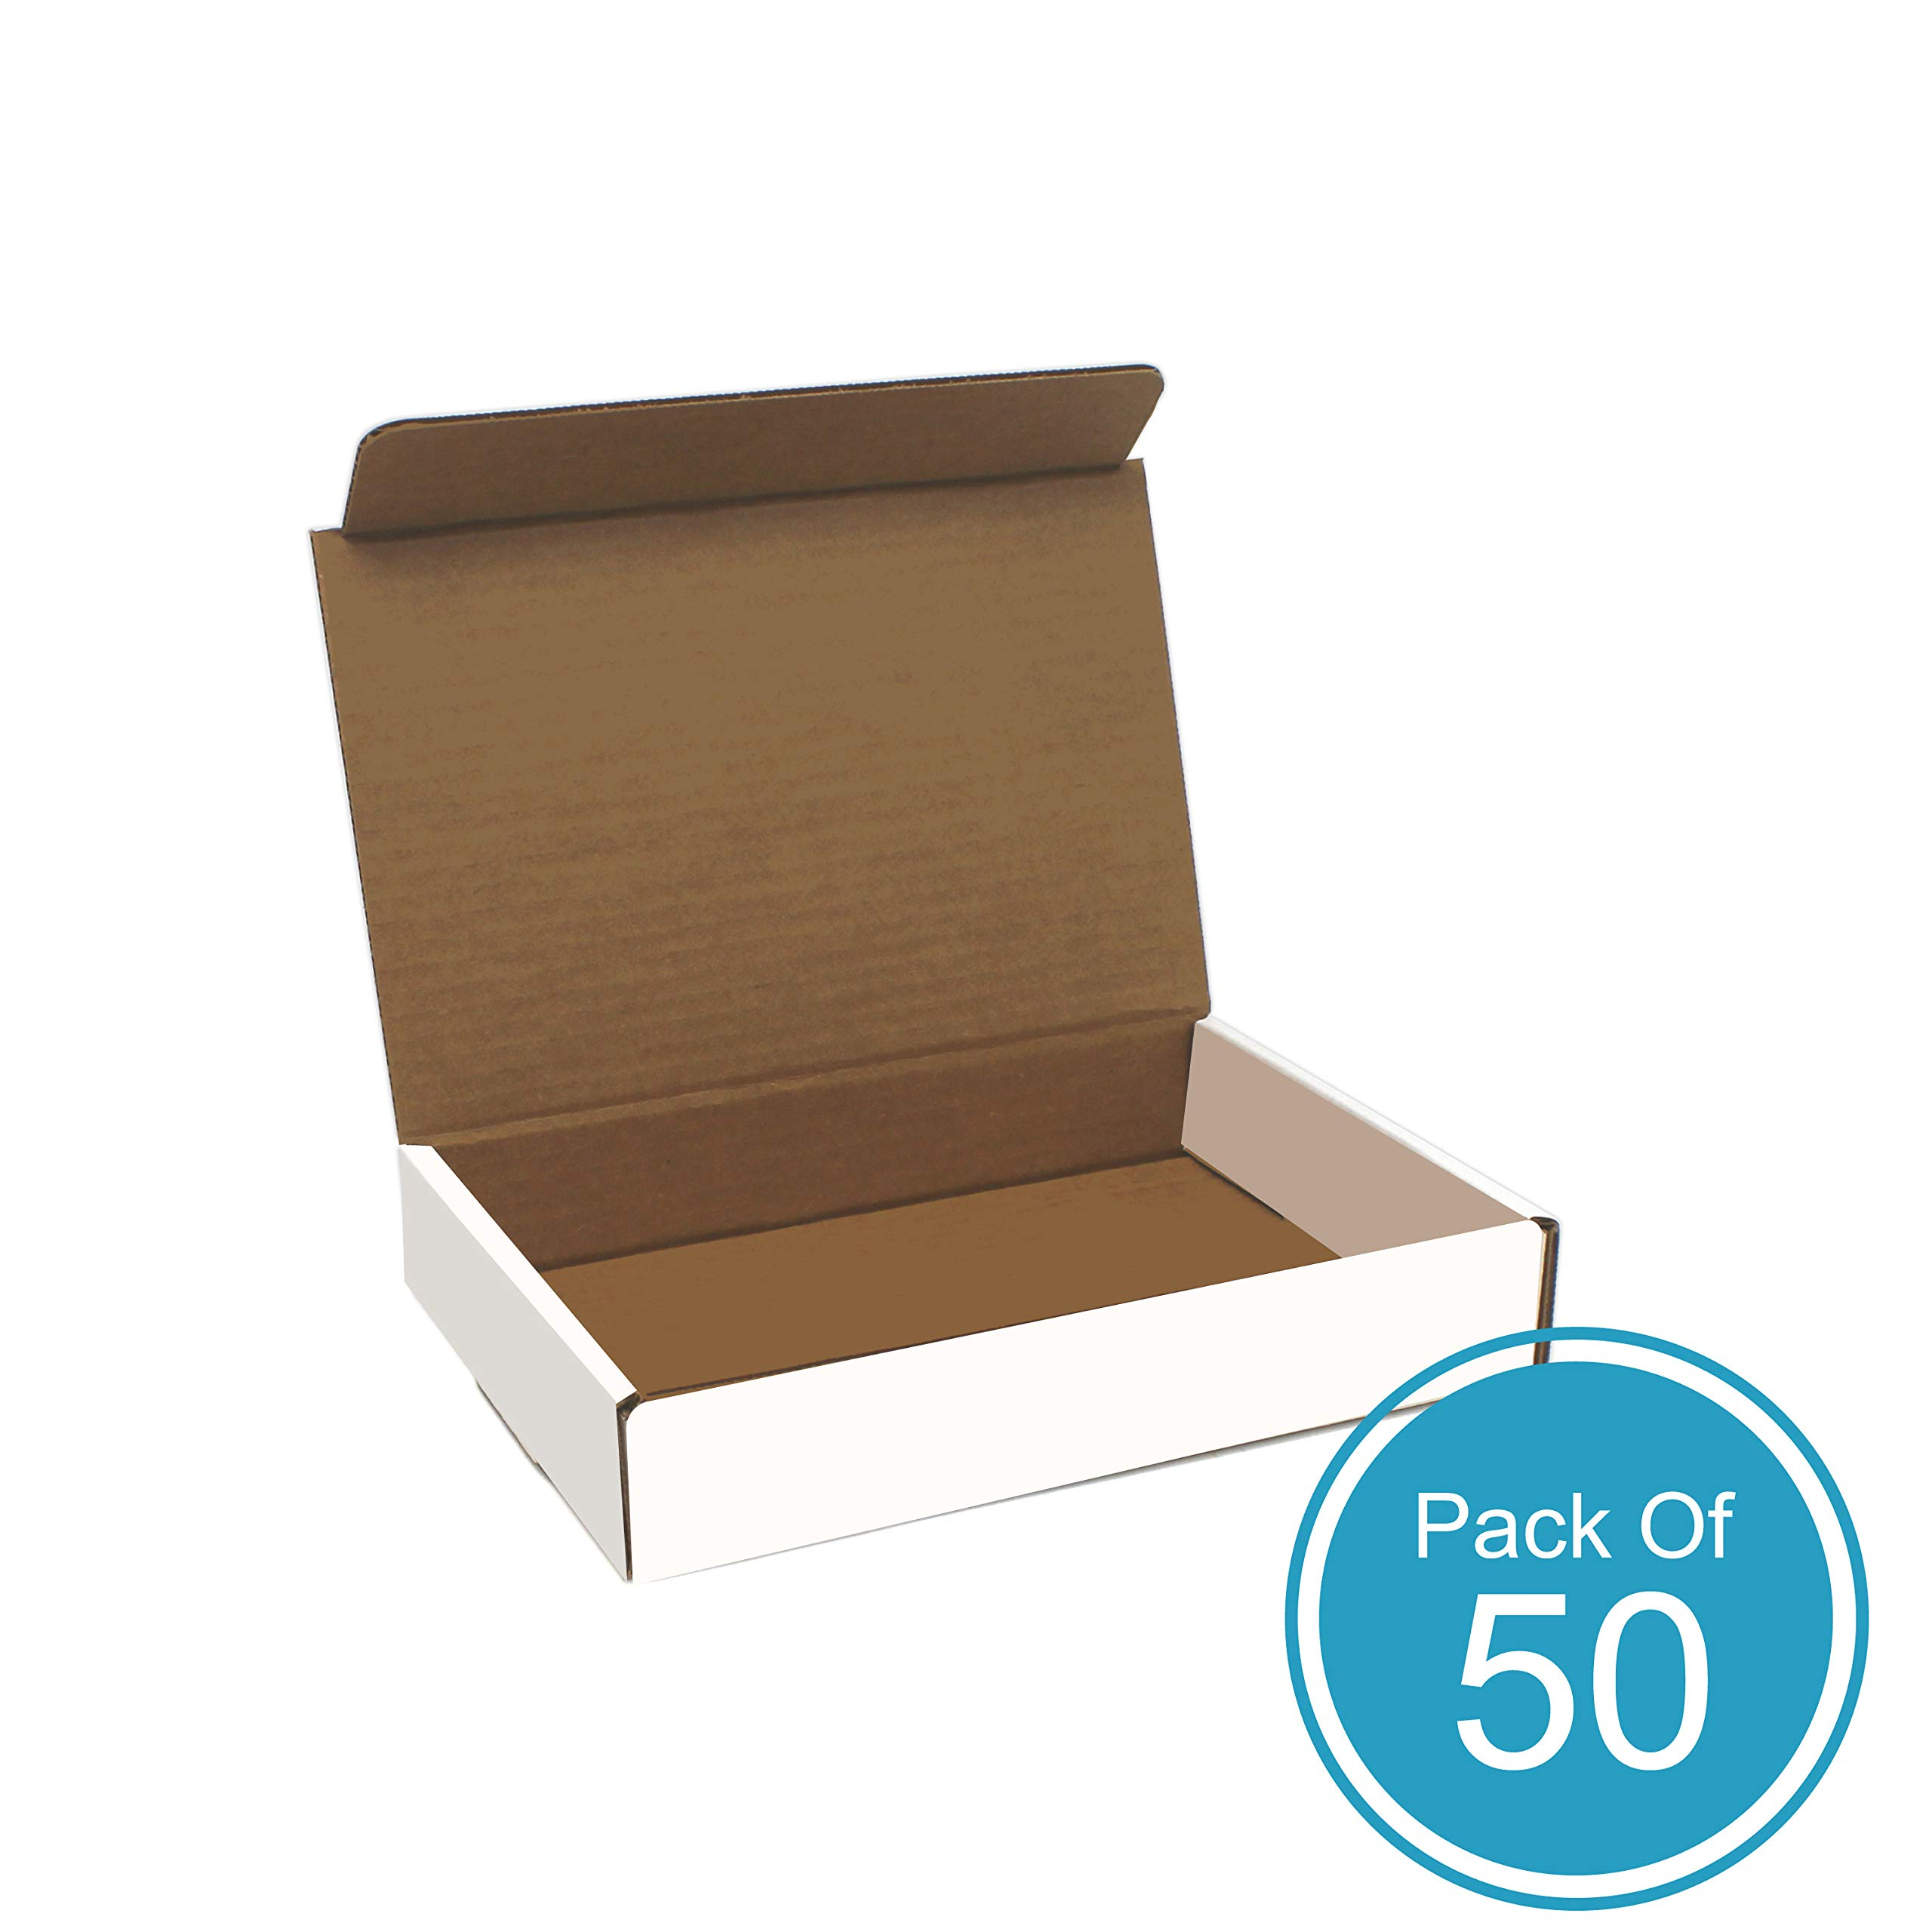 Corrugated Cardboard Shipping Box - Pack of 50, 9 x 6.5 x 1.75 Inches, White by Here to There Packaging (HTTP)